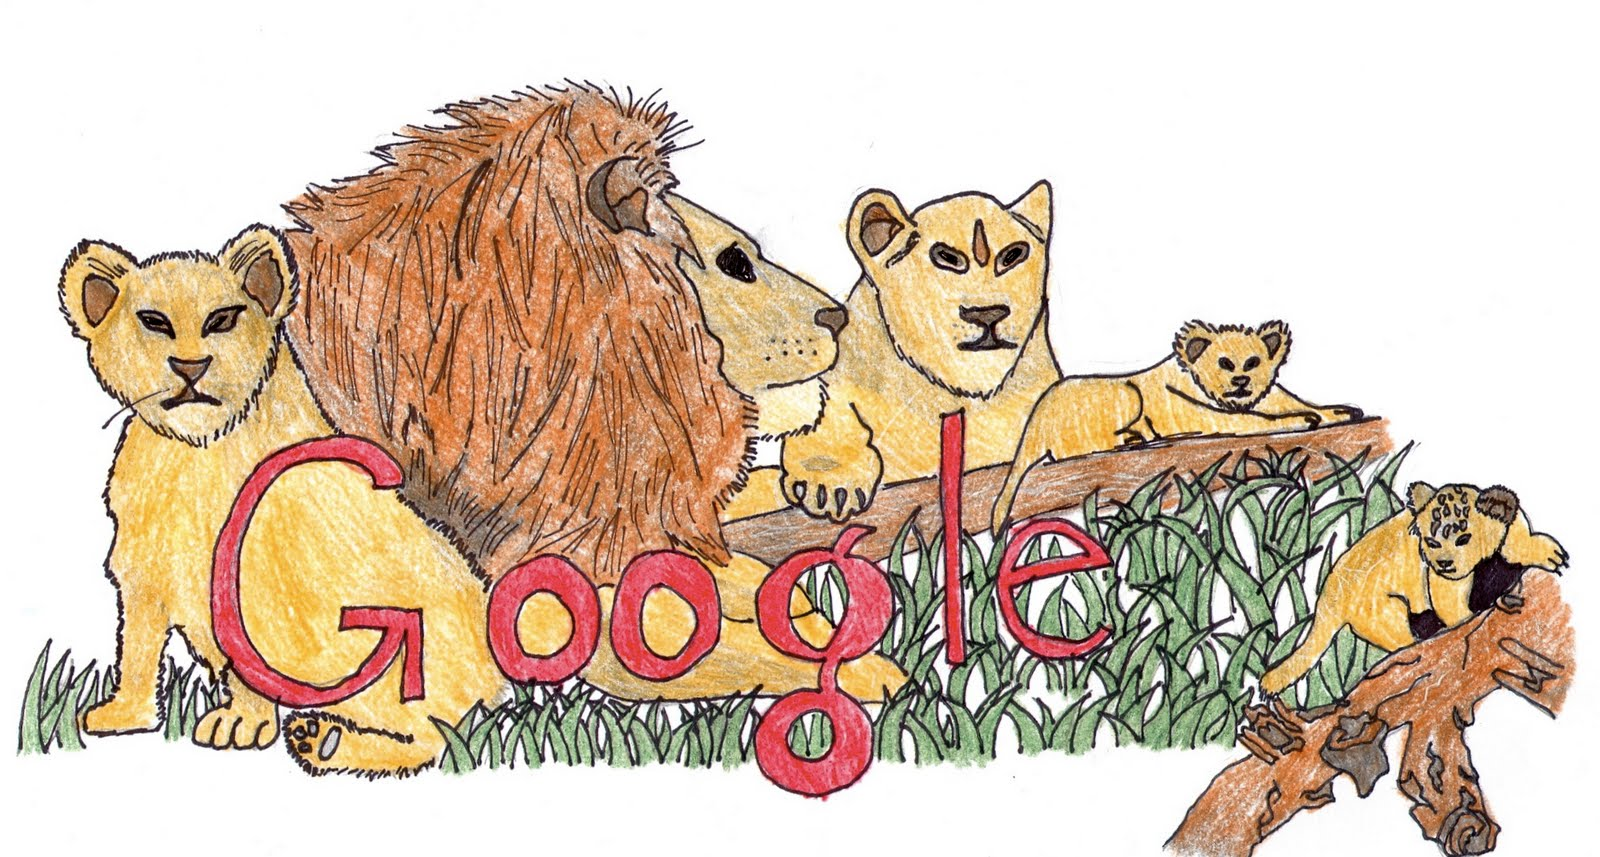 Google Doodle Competition for Kid